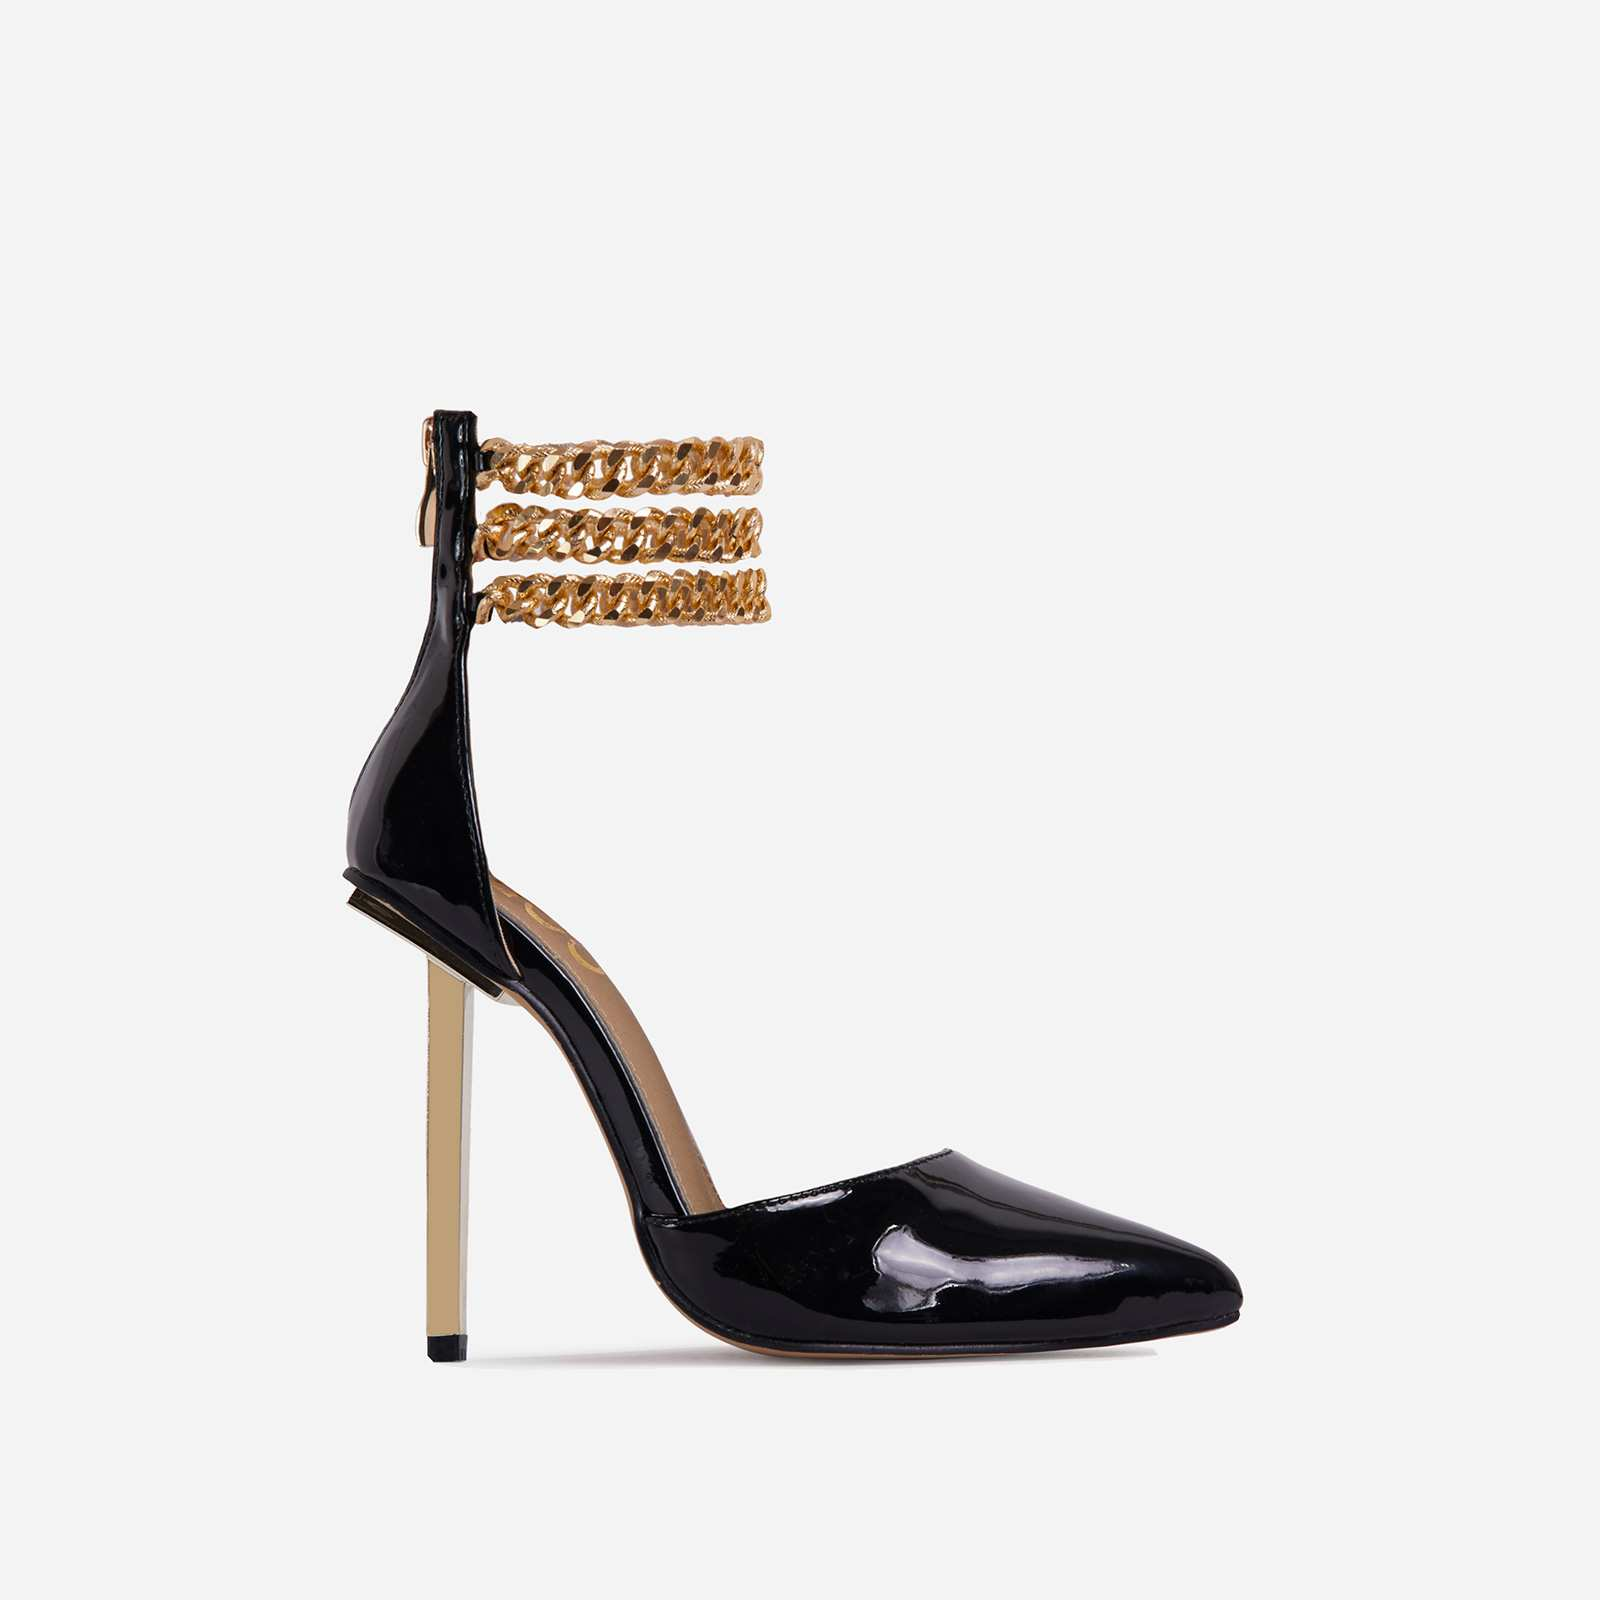 City-Life Triple Chain Detail Pointed Toe Metallic Heel In Black Patent